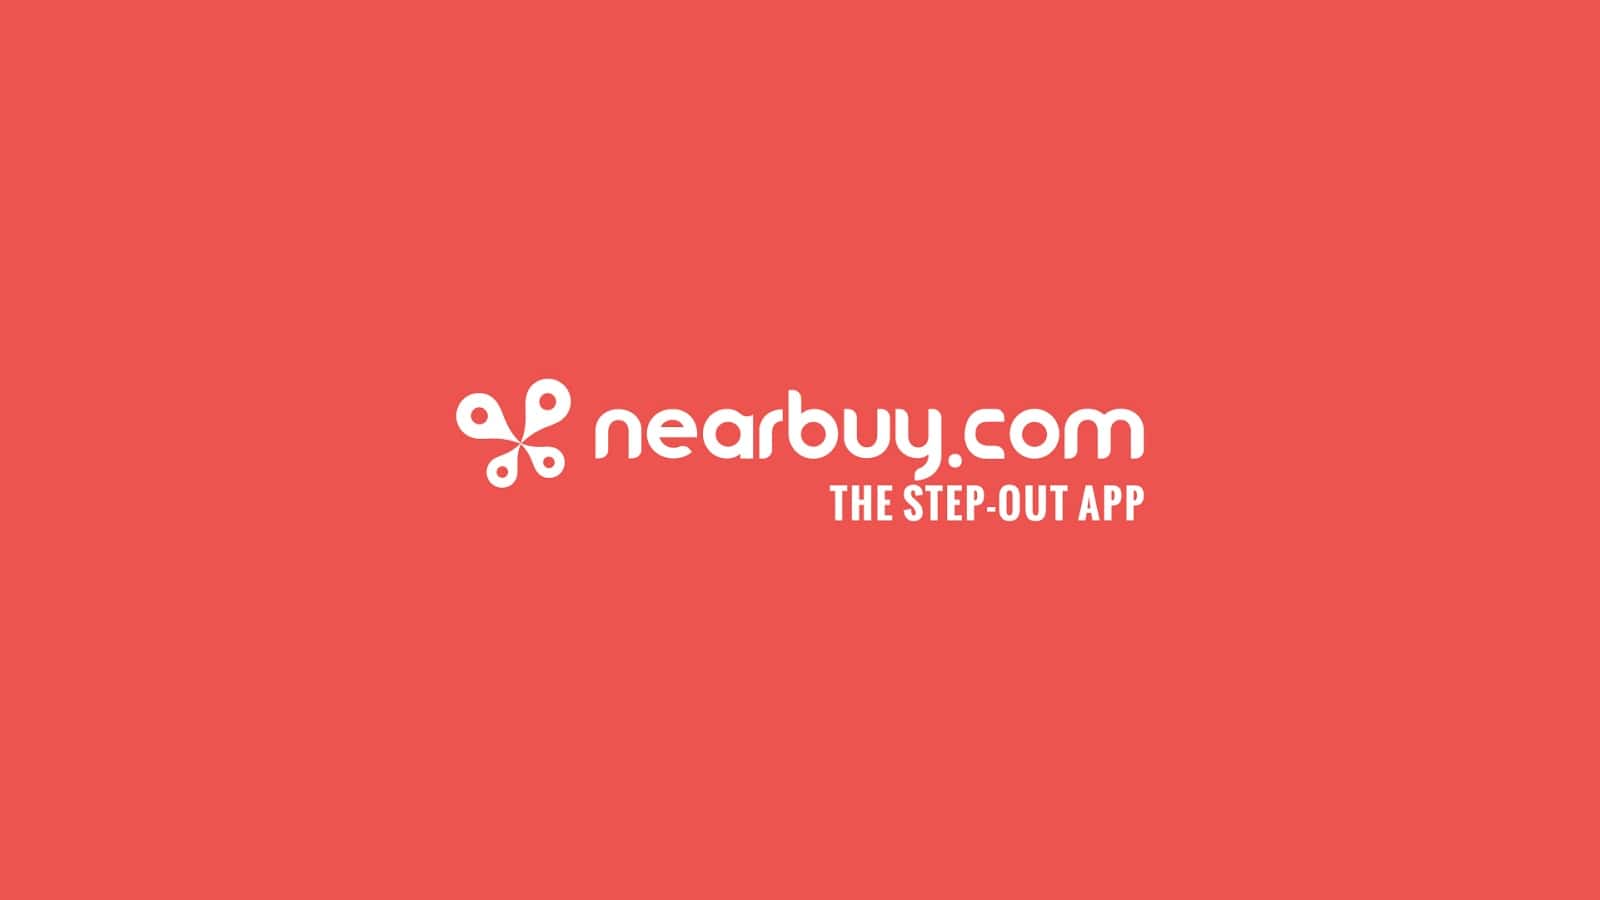 Nearby.com - STAAH